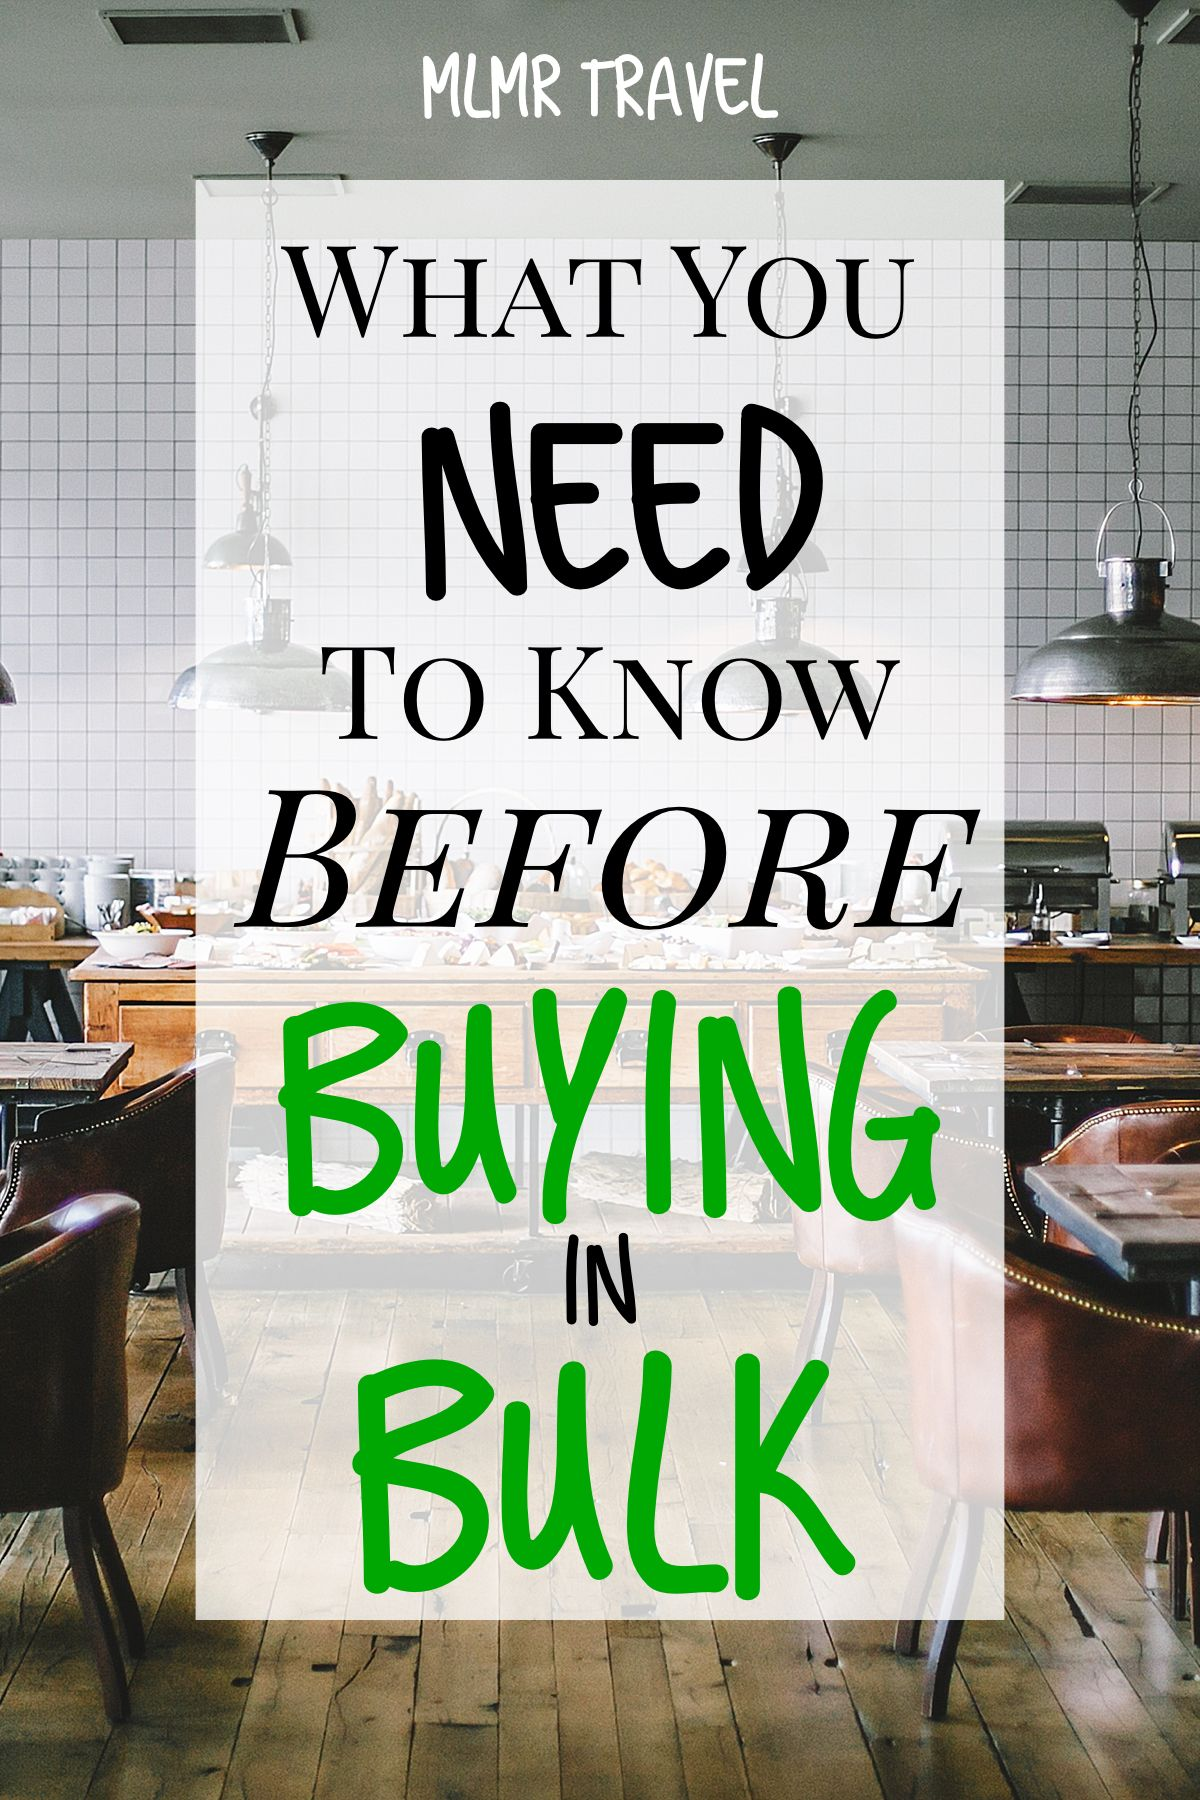 bd544f9a7355c A beginners guide to buying in bulk #zerowaste #zerowasteliving  #zerowastelifestyle #zerowastekitchen #buyinginbulk #groceries  #groceryshopping #environment